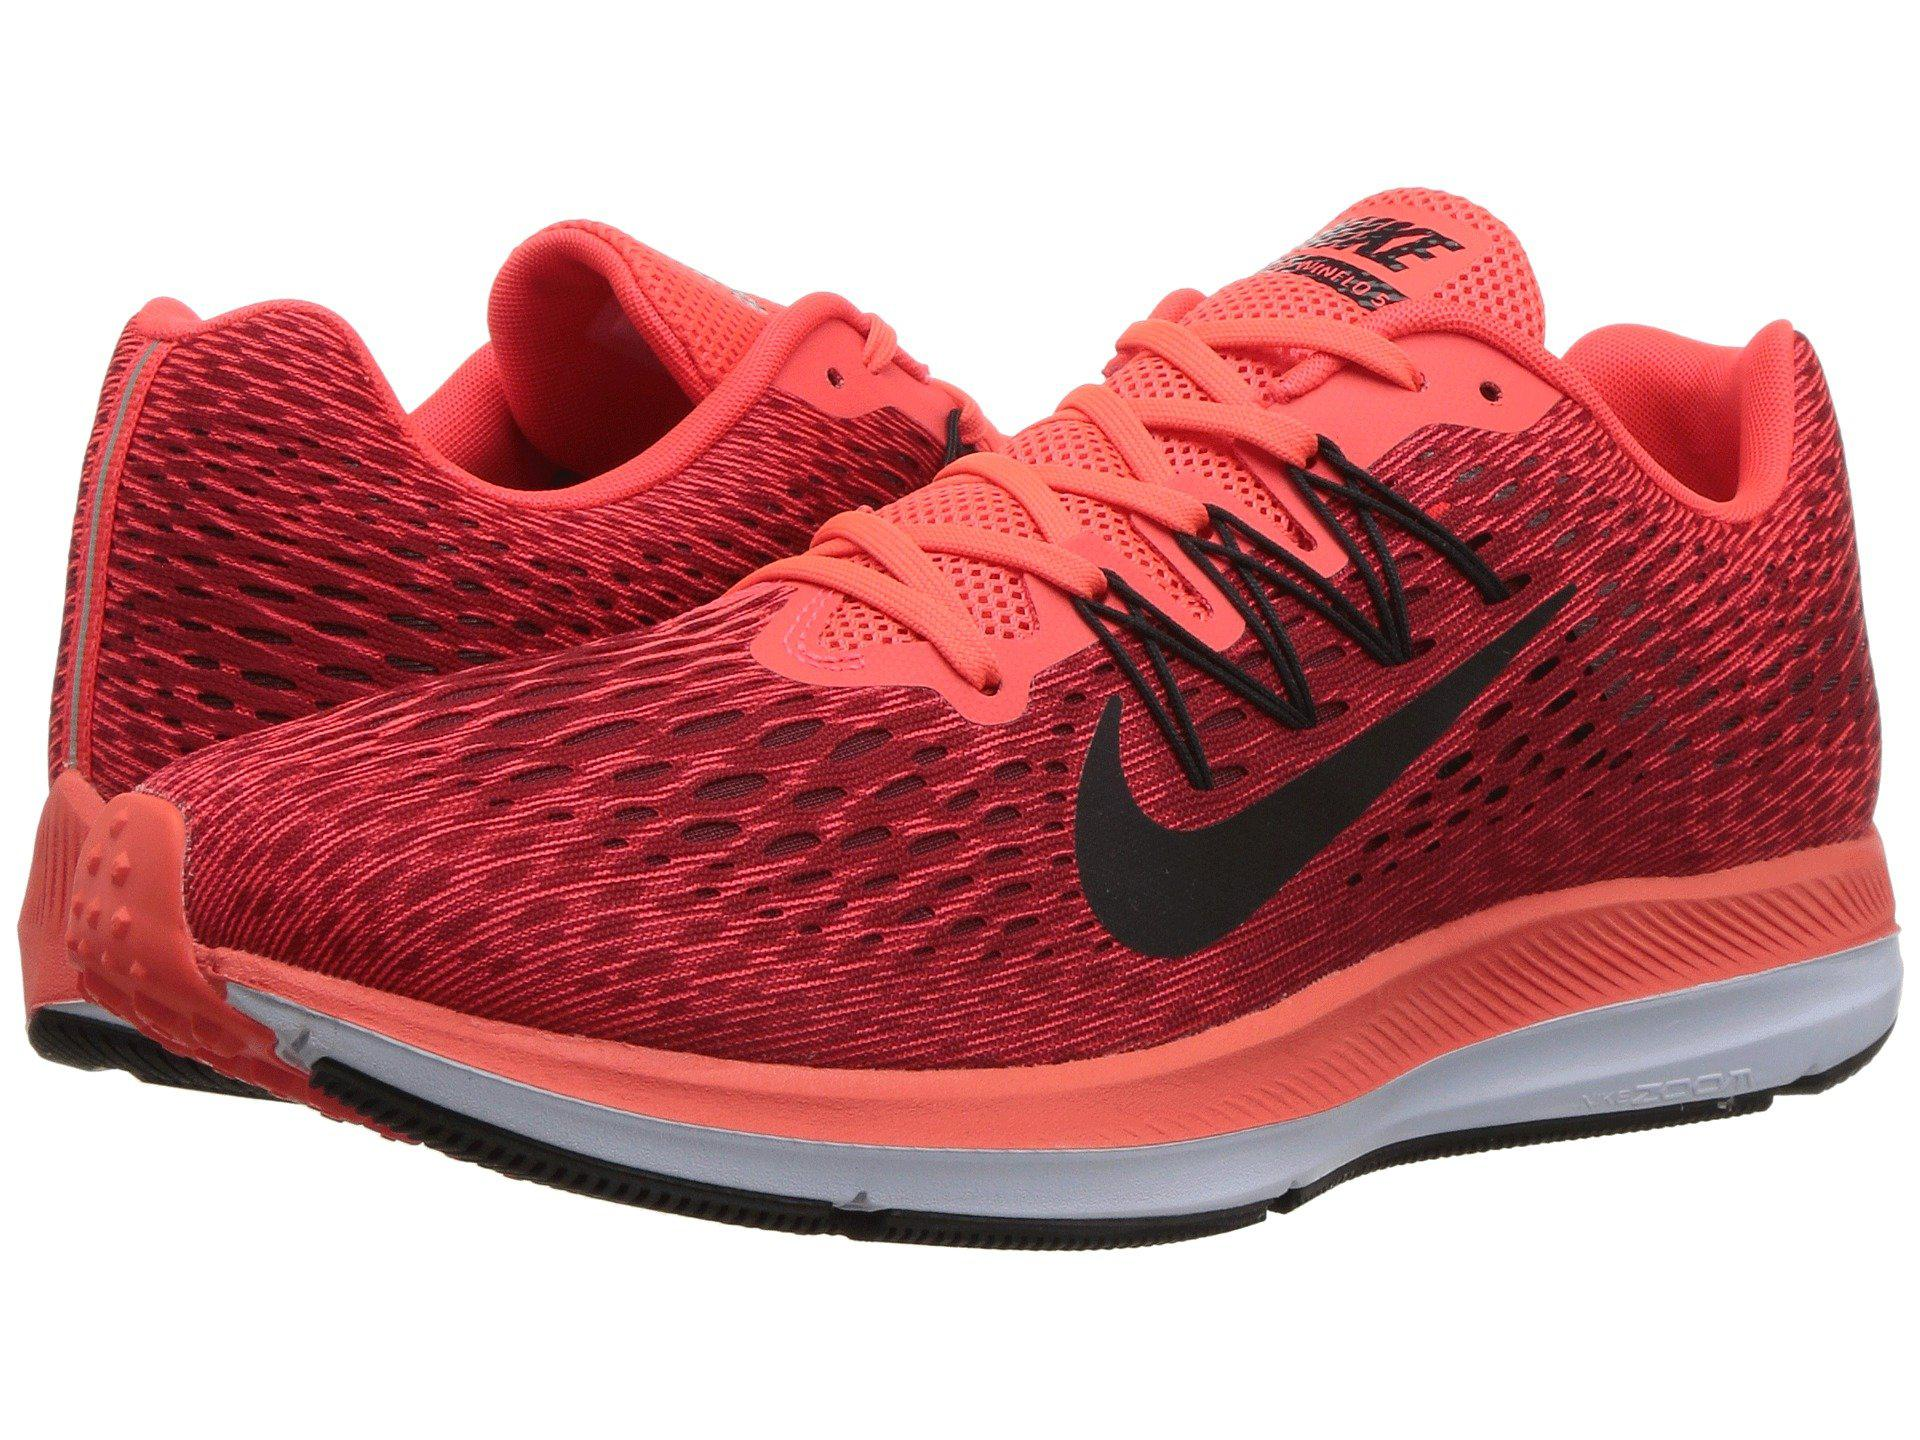 759db03afbd2 Lyst - Nike Air Zoom Winflo 5 in Red for Men - Save 19%